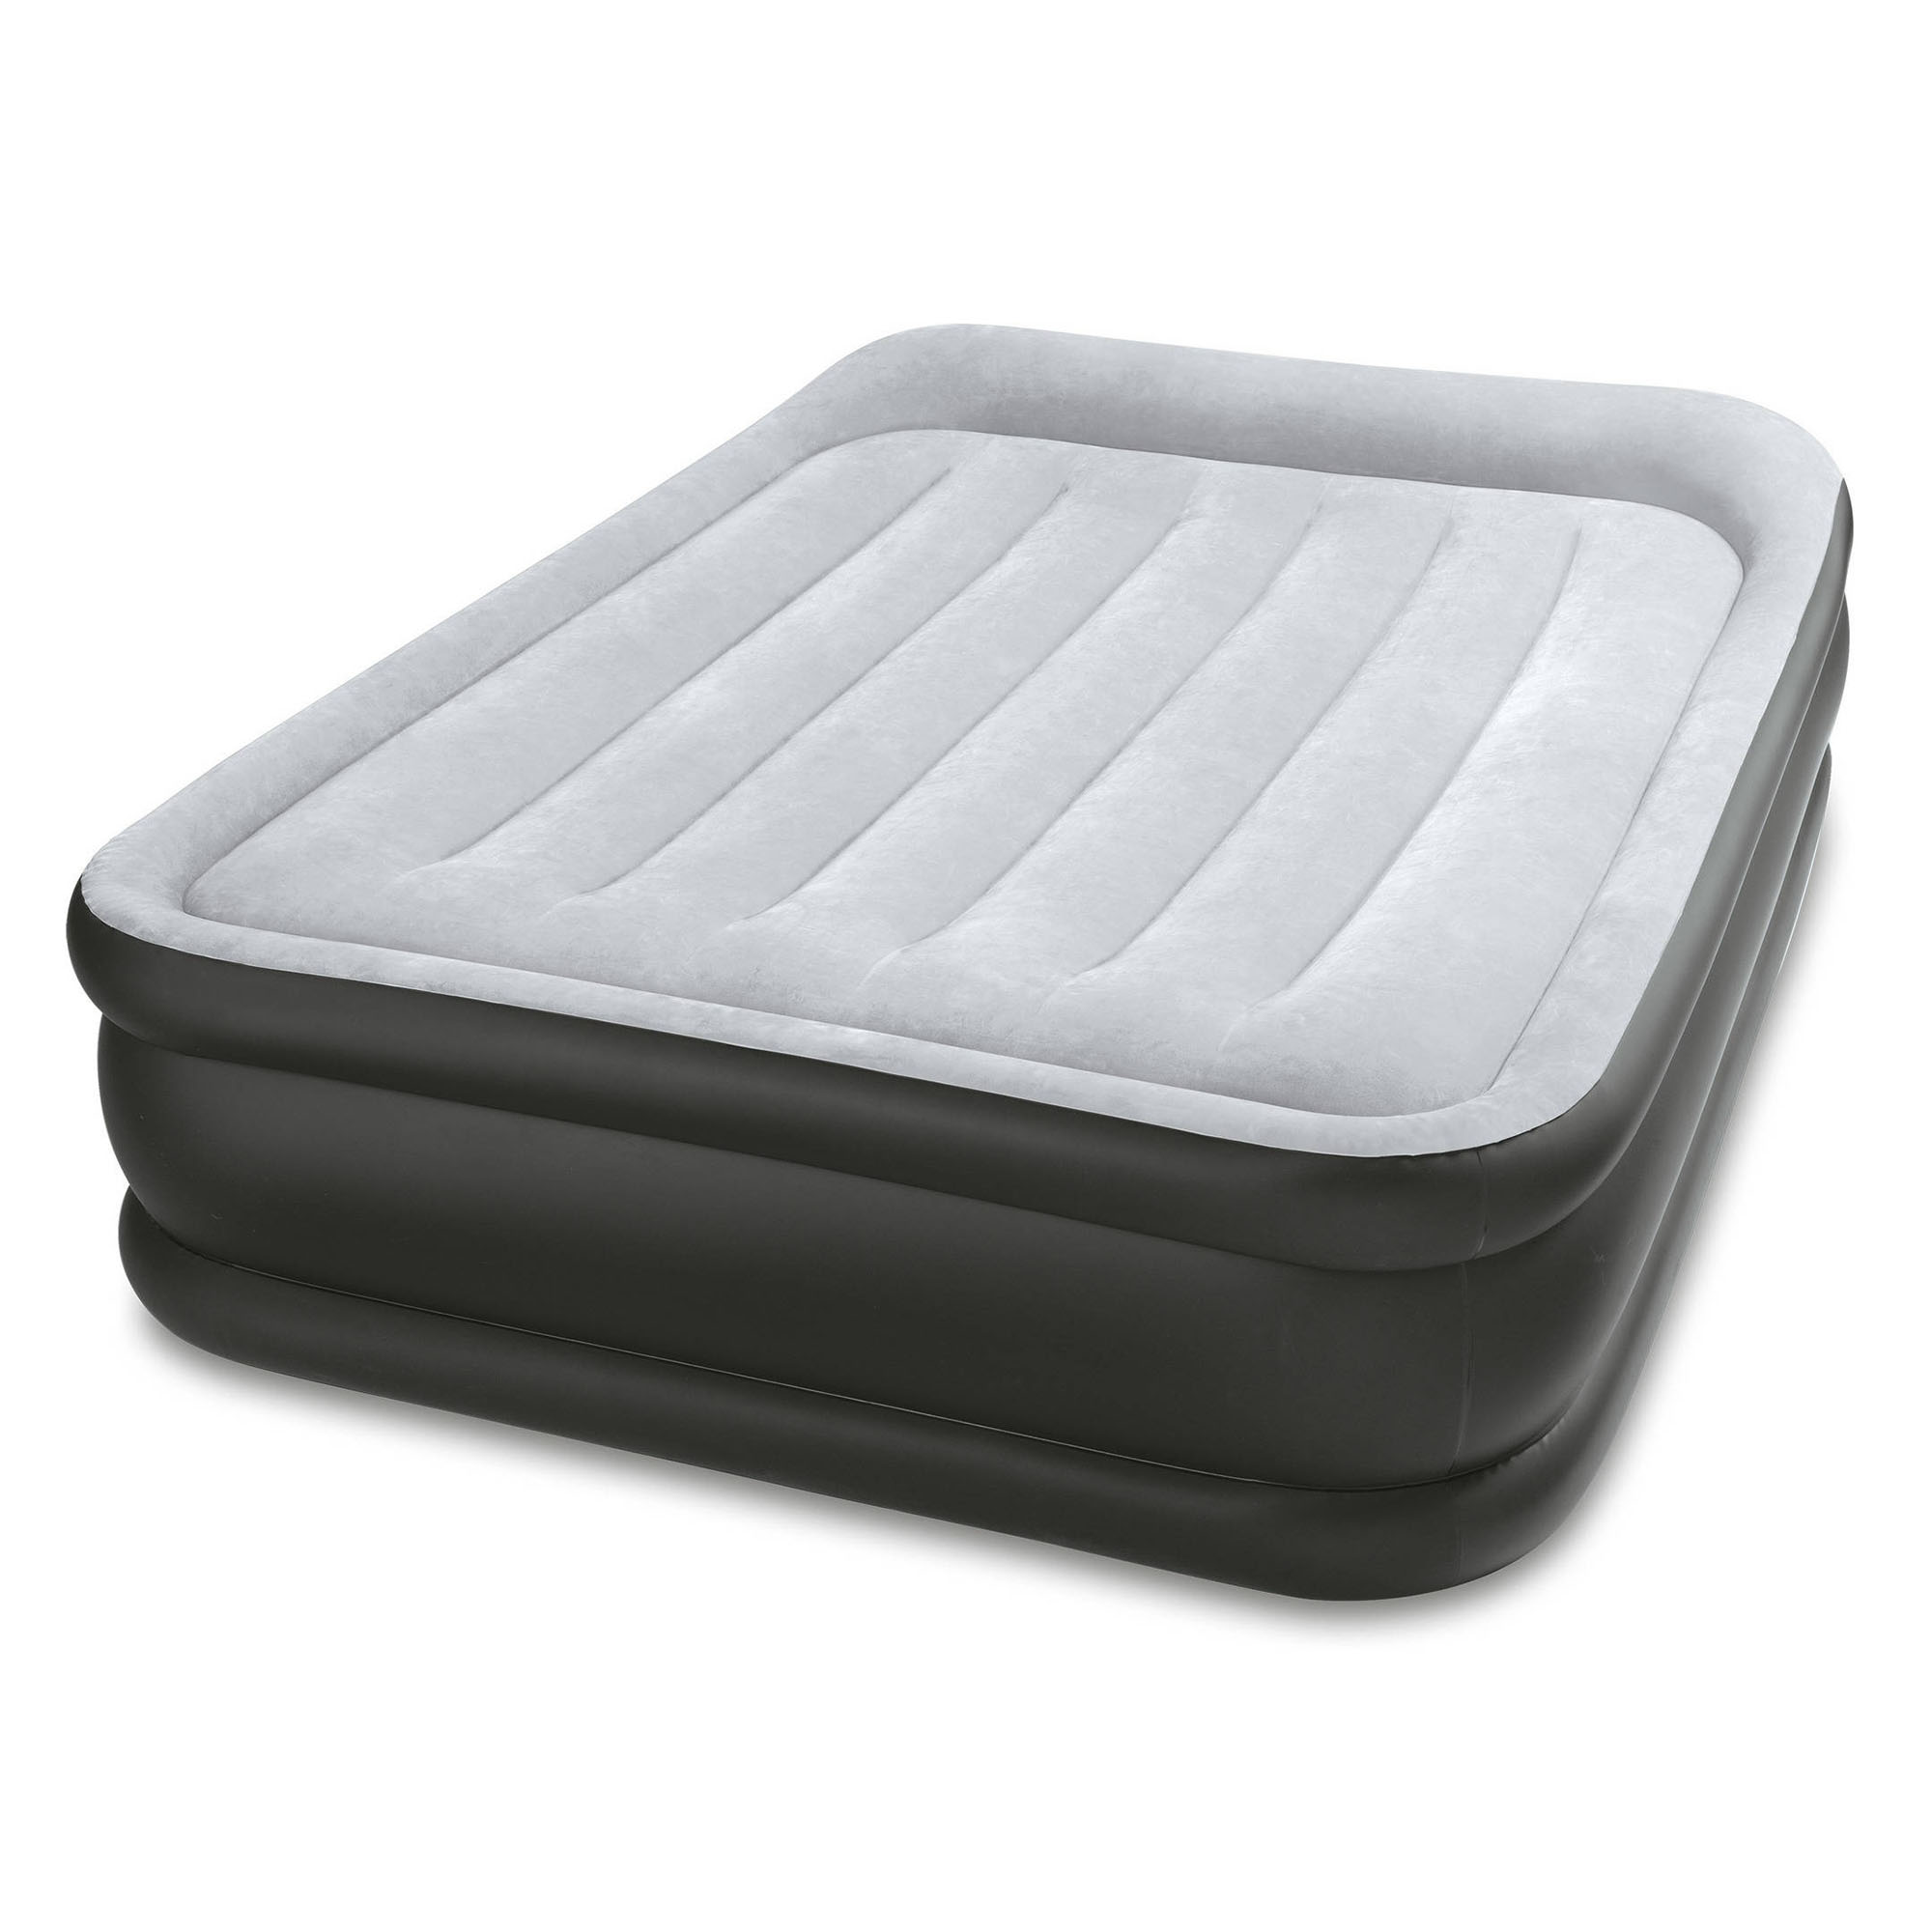 "Intex Recreation 16.5"" DuraBeam Deluxe Pillow Rest Airbed..."